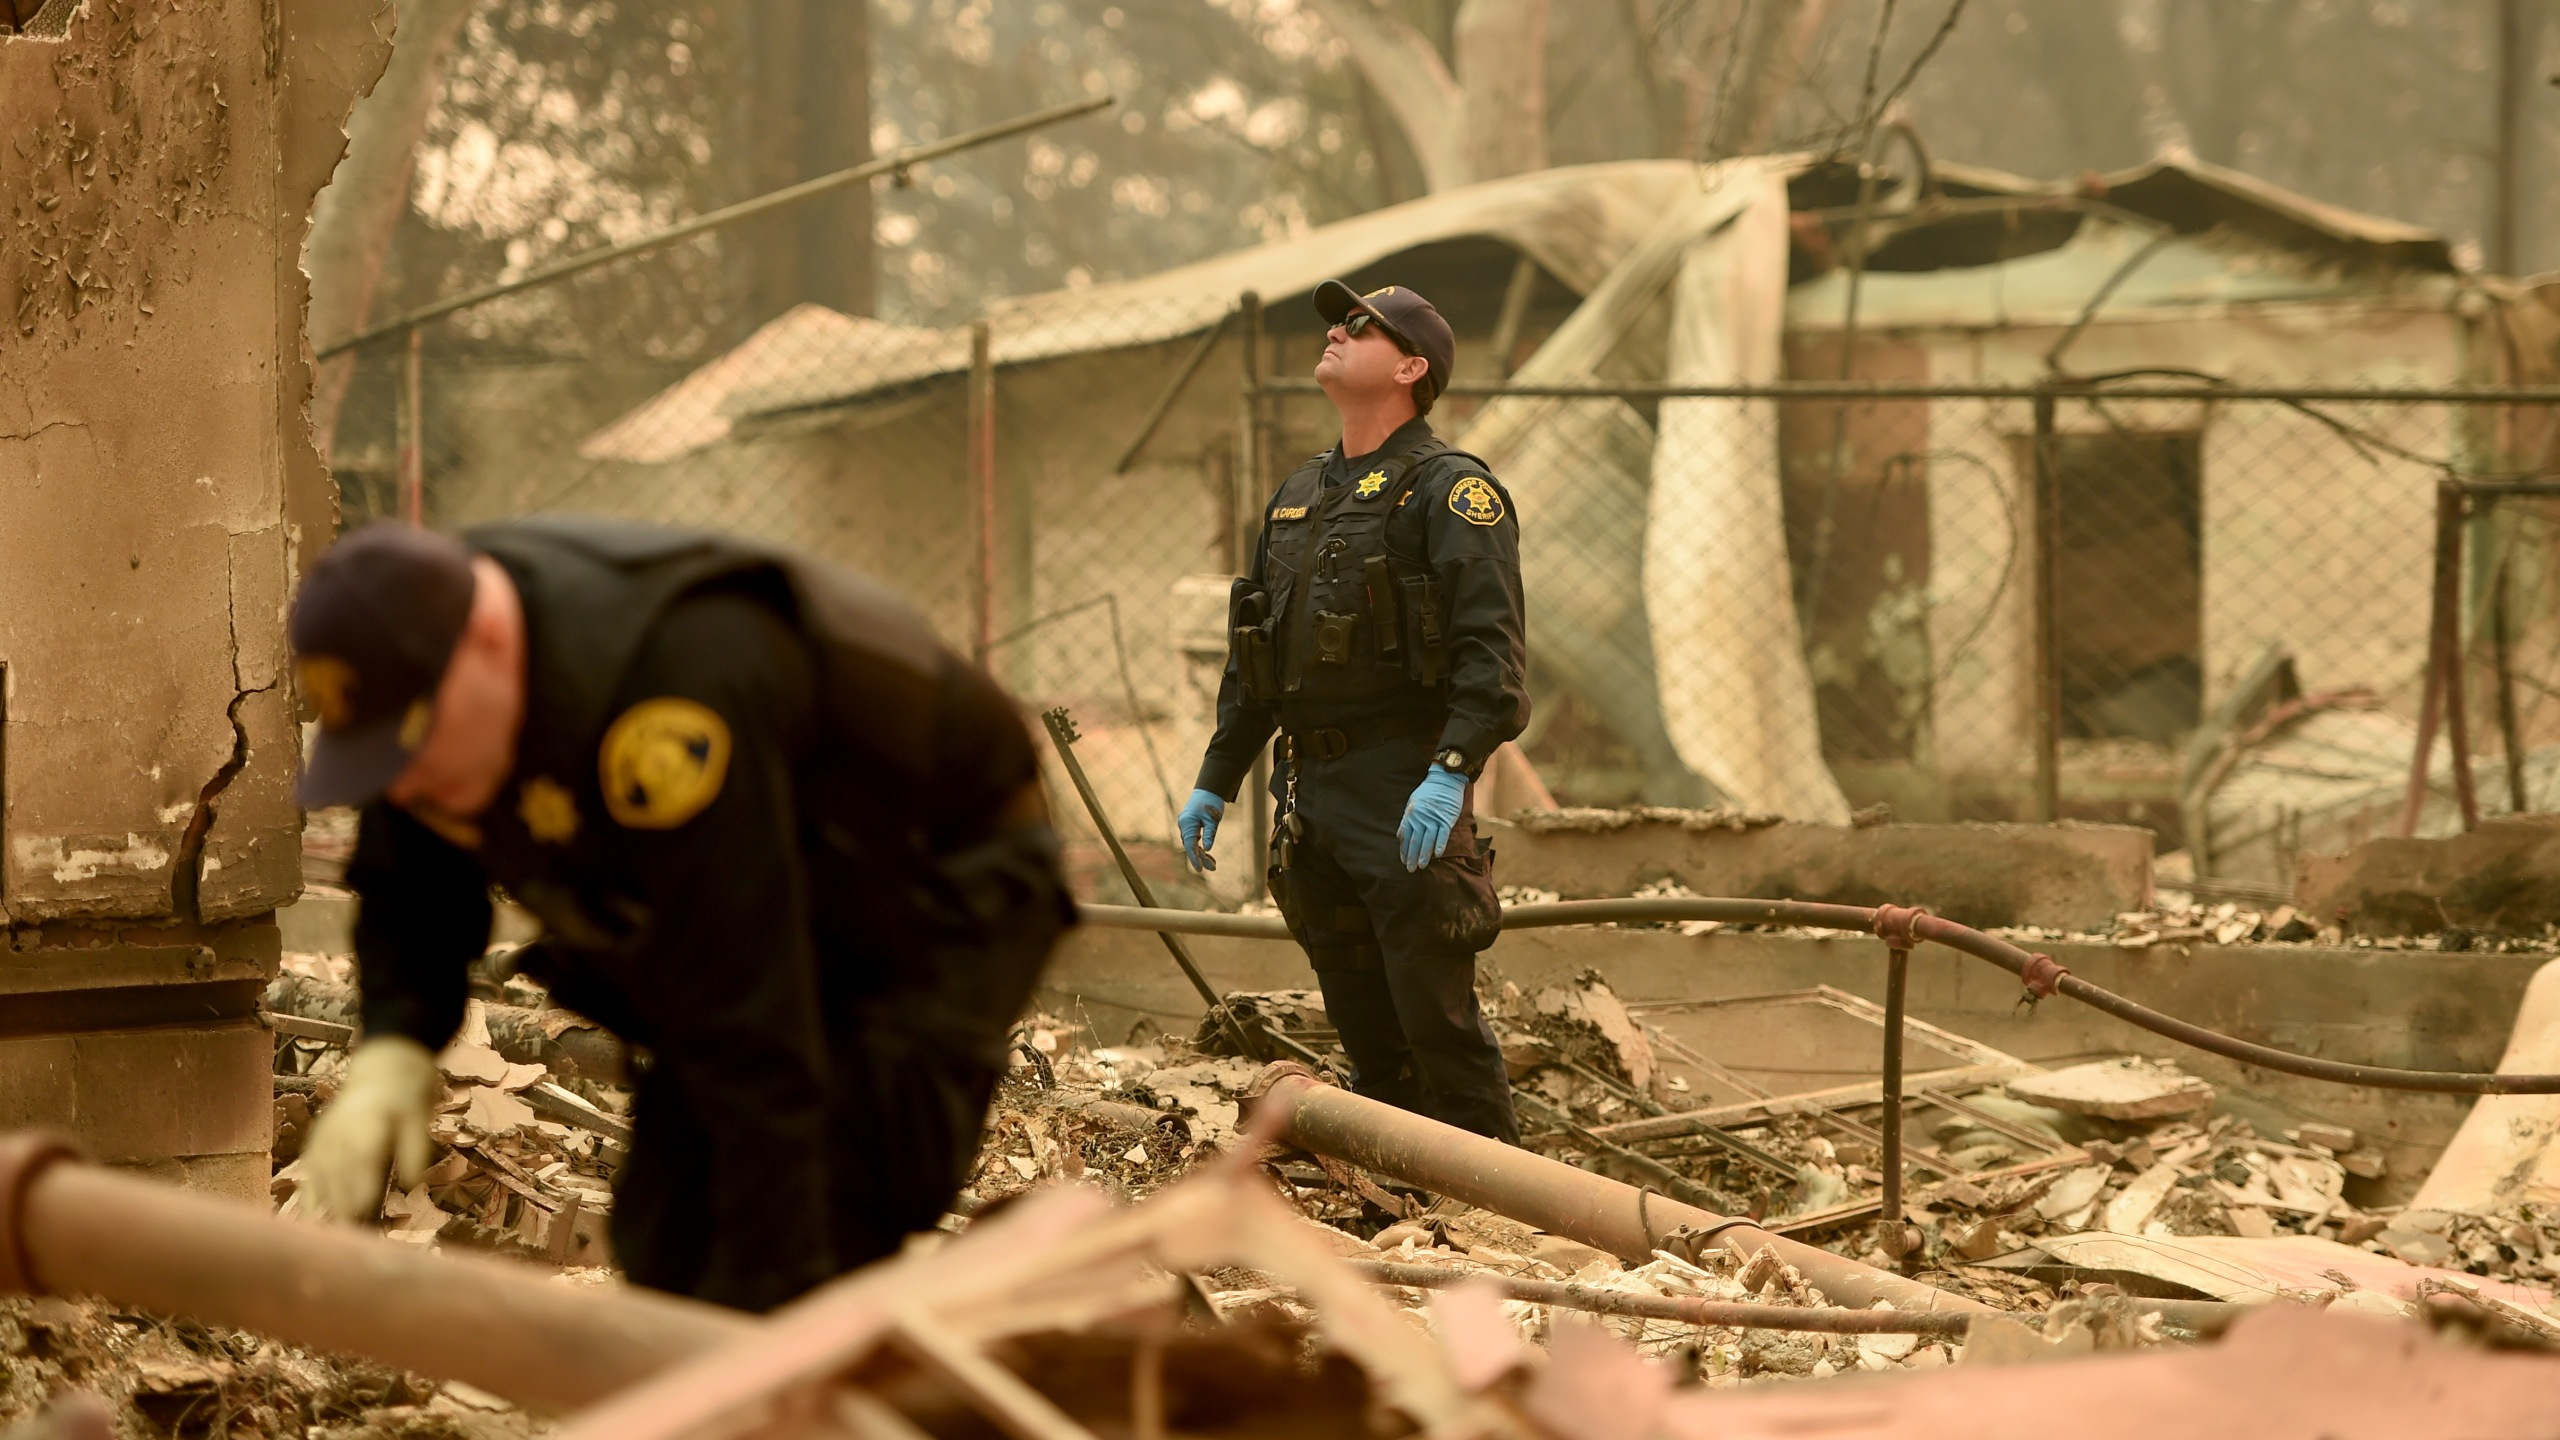 Alameda County Sheriff Coroner officers search for human remains at a burned residence in Paradise, California on November 12, 2018. (Credit: JOSH EDELSON/AFP/Getty Images)